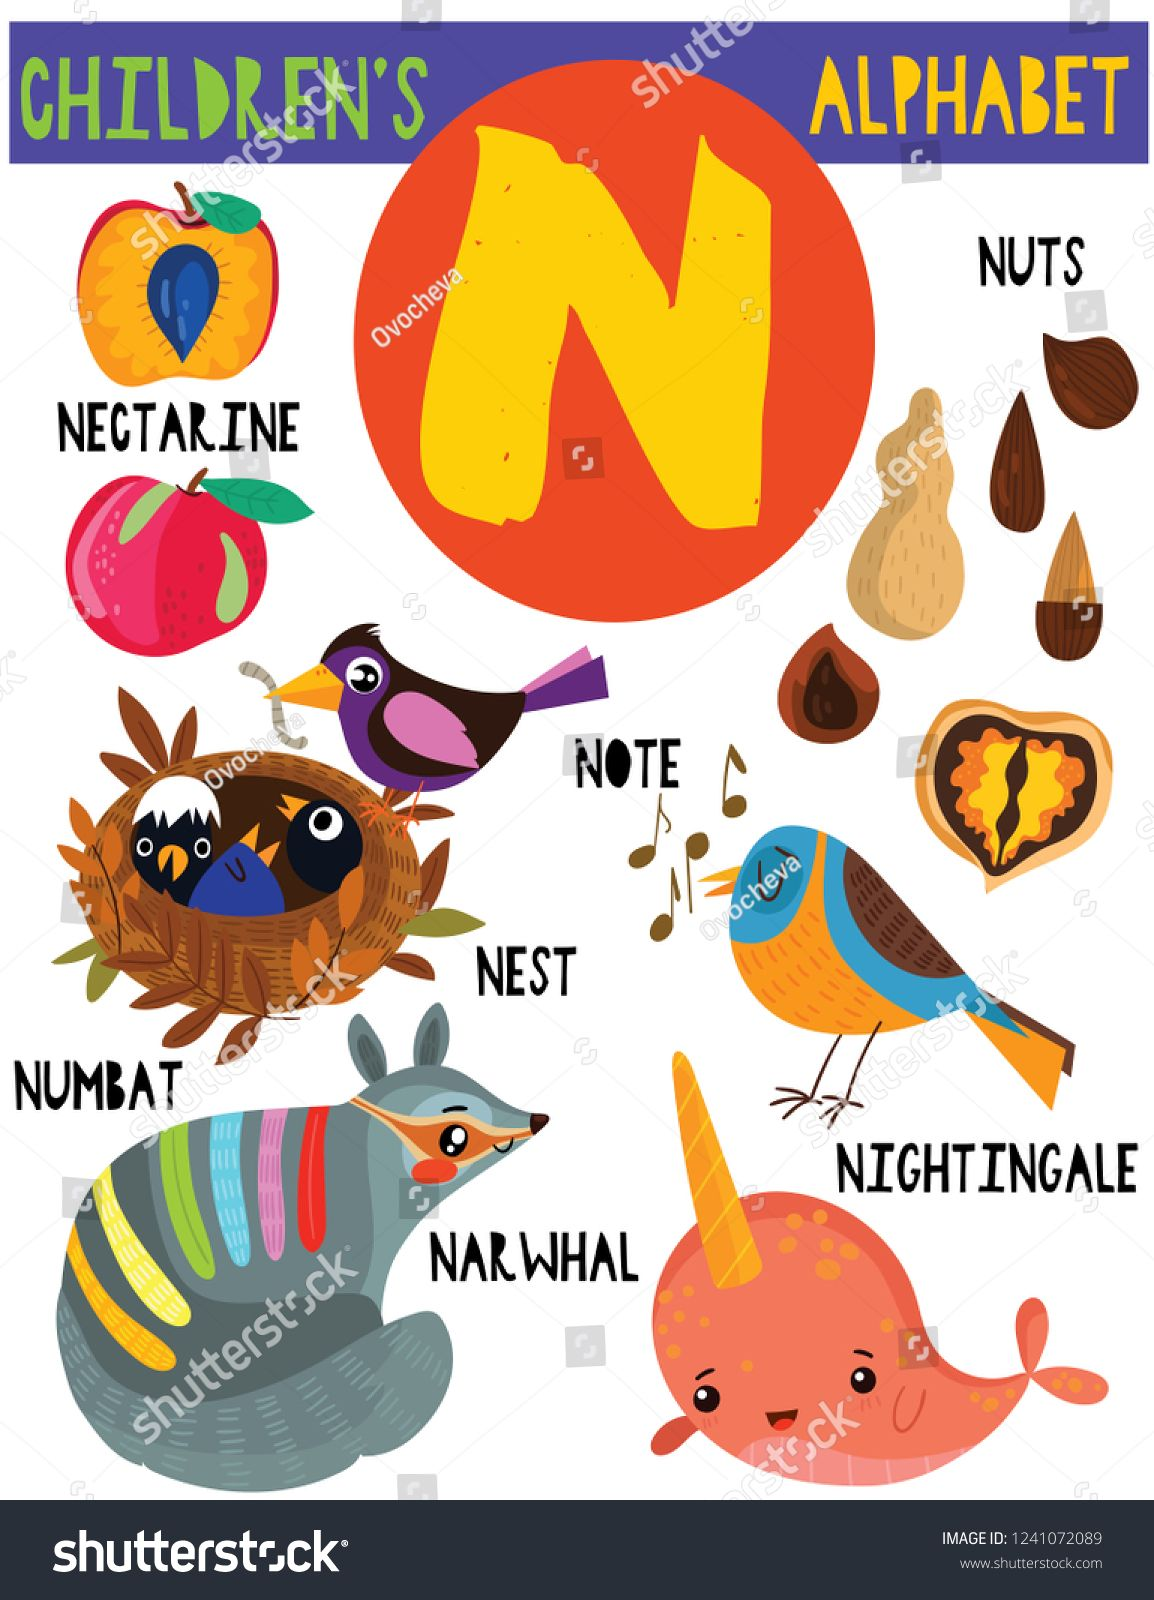 Image of: Cartoon Animals Letter Ncute Childrens Alphabet With Adorable Animals And Other Thingsposter For Kids Learning English Vocabularycartoon Vector Pinterest Letter Ncute Childrens Alphabet With Adorable Animals And Other